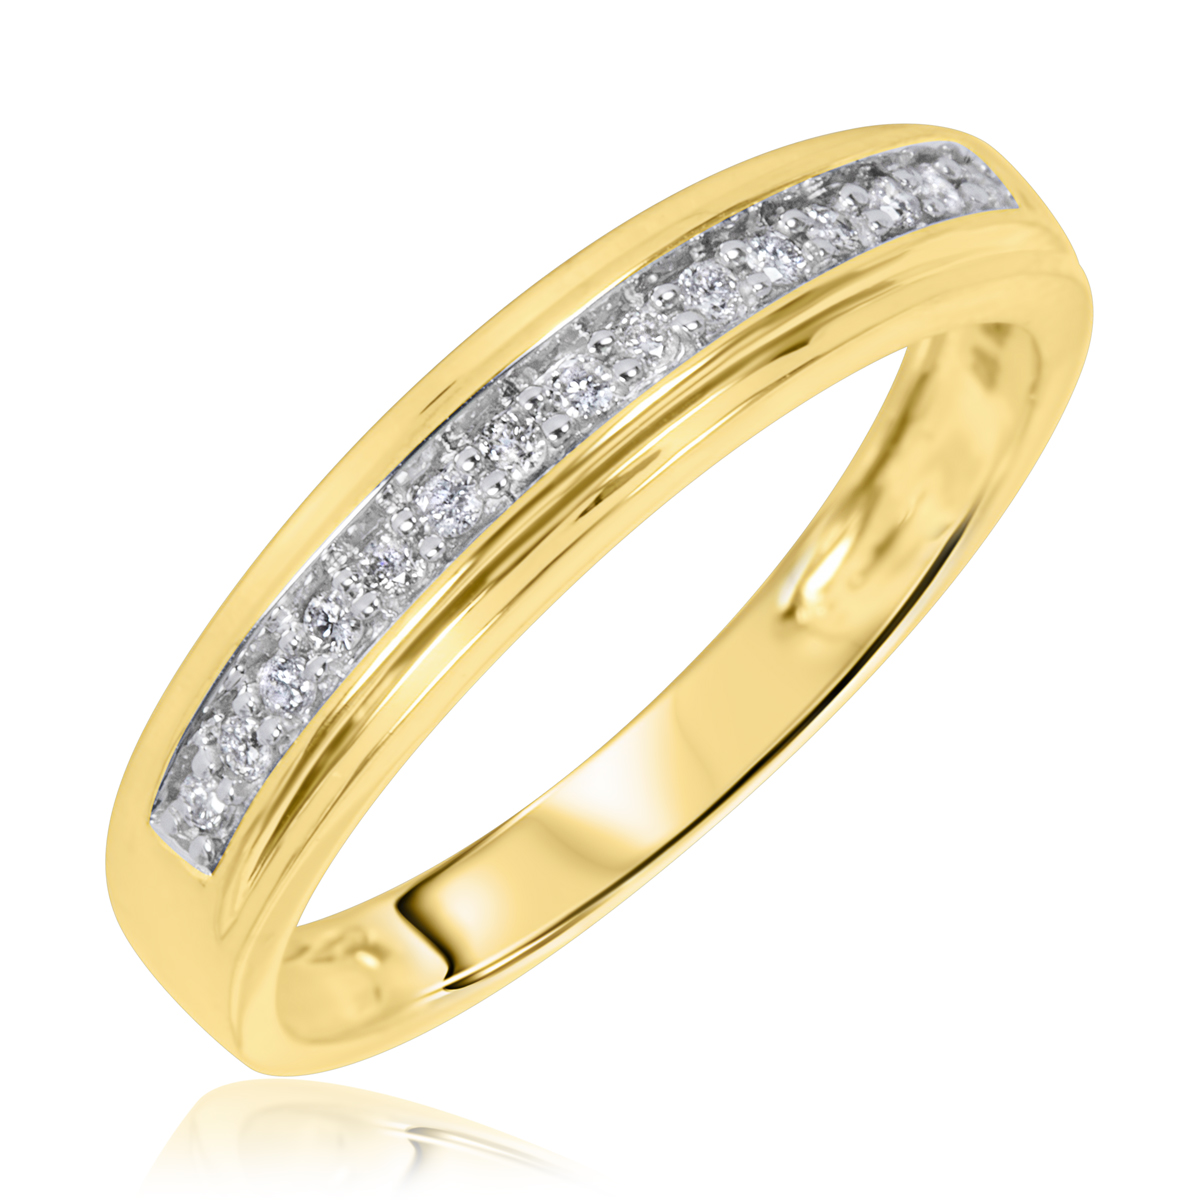 1 5 carat tw diamond men39s wedding ring 14k yellow gold for Mens wedding rings yellow gold